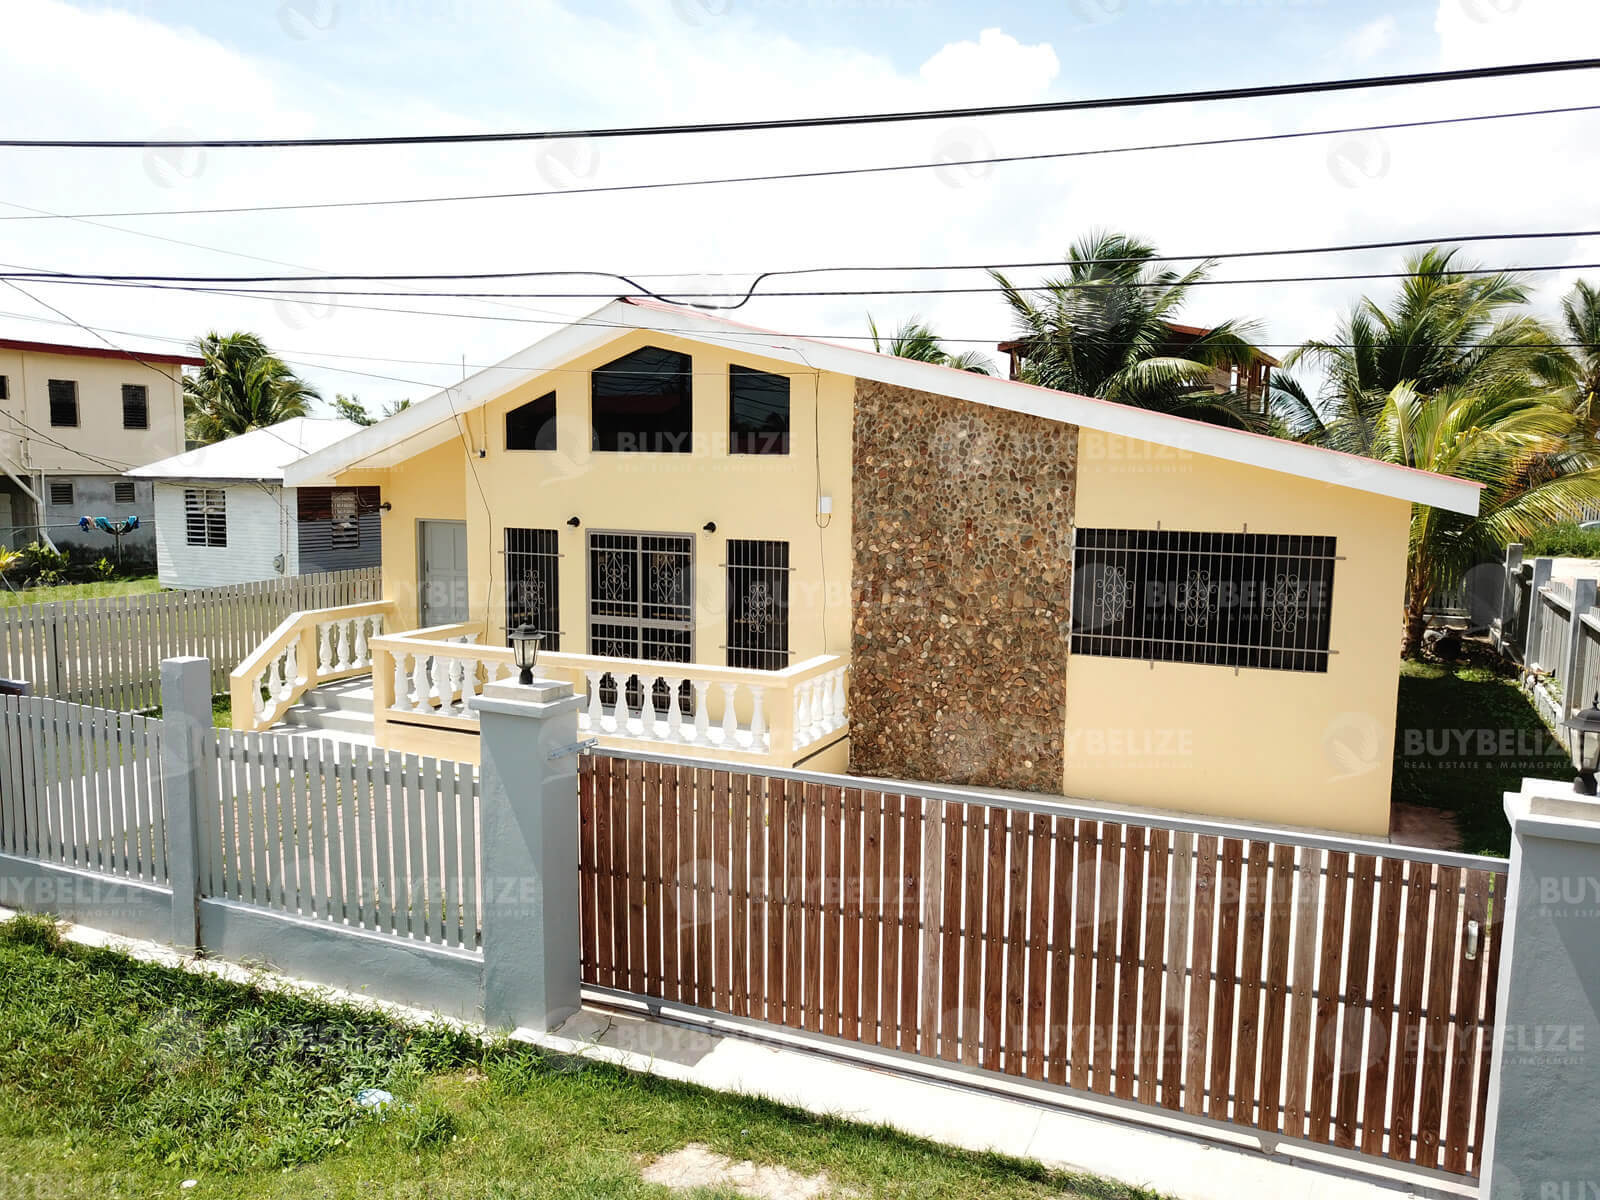 Unfurnished 3 Bed House for Rent in Vista Del Mar Ladyville Belize